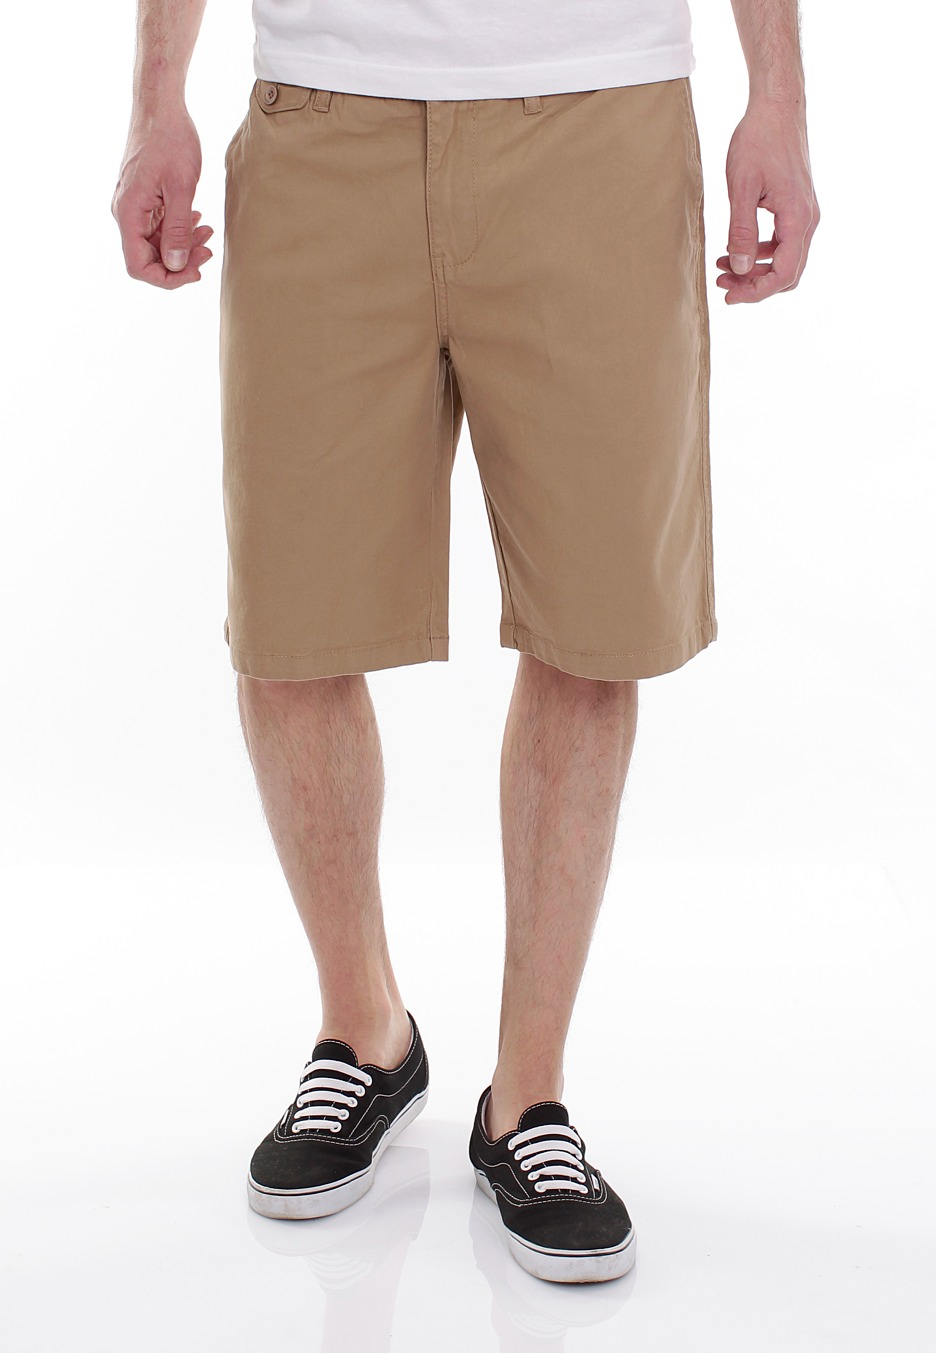 Khaki shorts are a necessary staple of any wardrobe. Ideal for spring and summer weather, these shorts are as versatile as they are comfortable, and American .